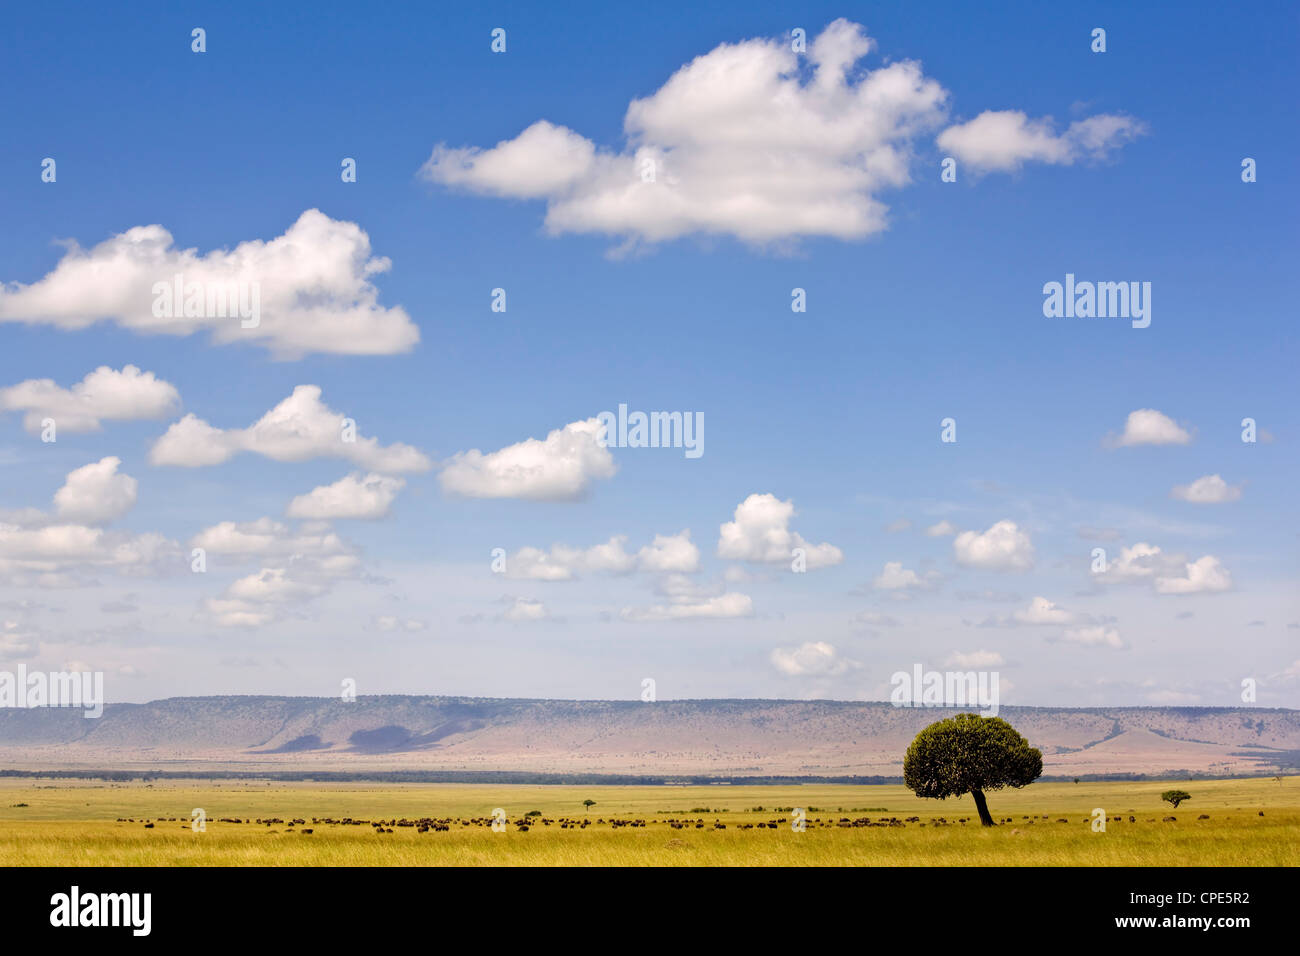 A herd of buffalo dwarfed by the vastness of the Masai Mara plains, Kenya, East Africa, Africa - Stock Image